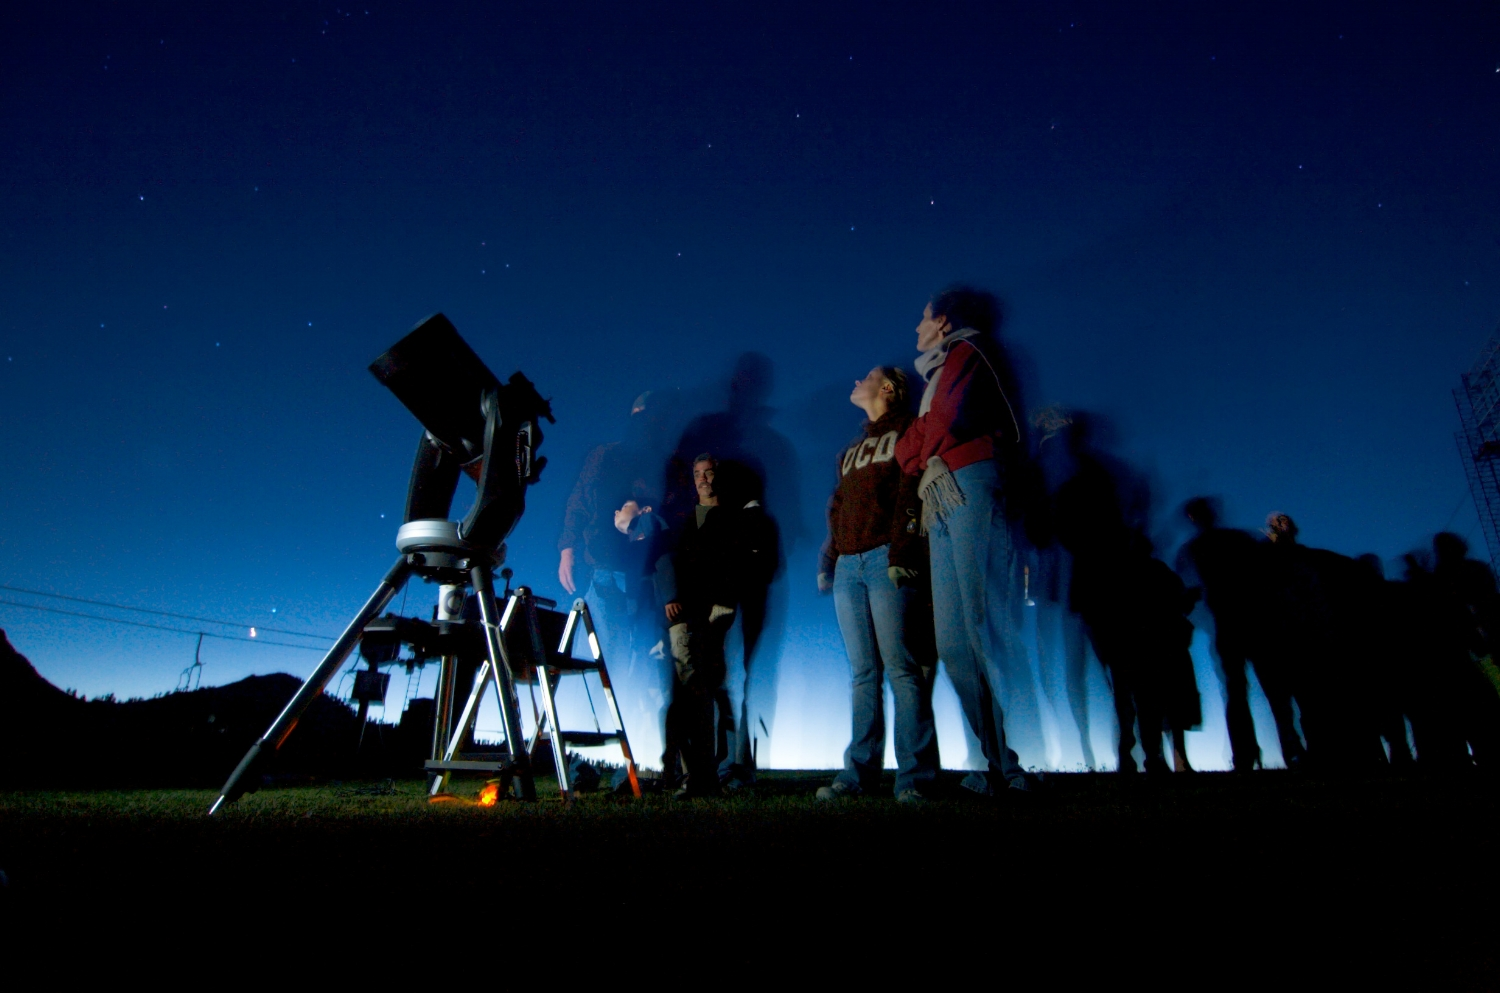 Visitors line up to look through a telescope at Squaw Valley Resort on Friday July 13, 2007.